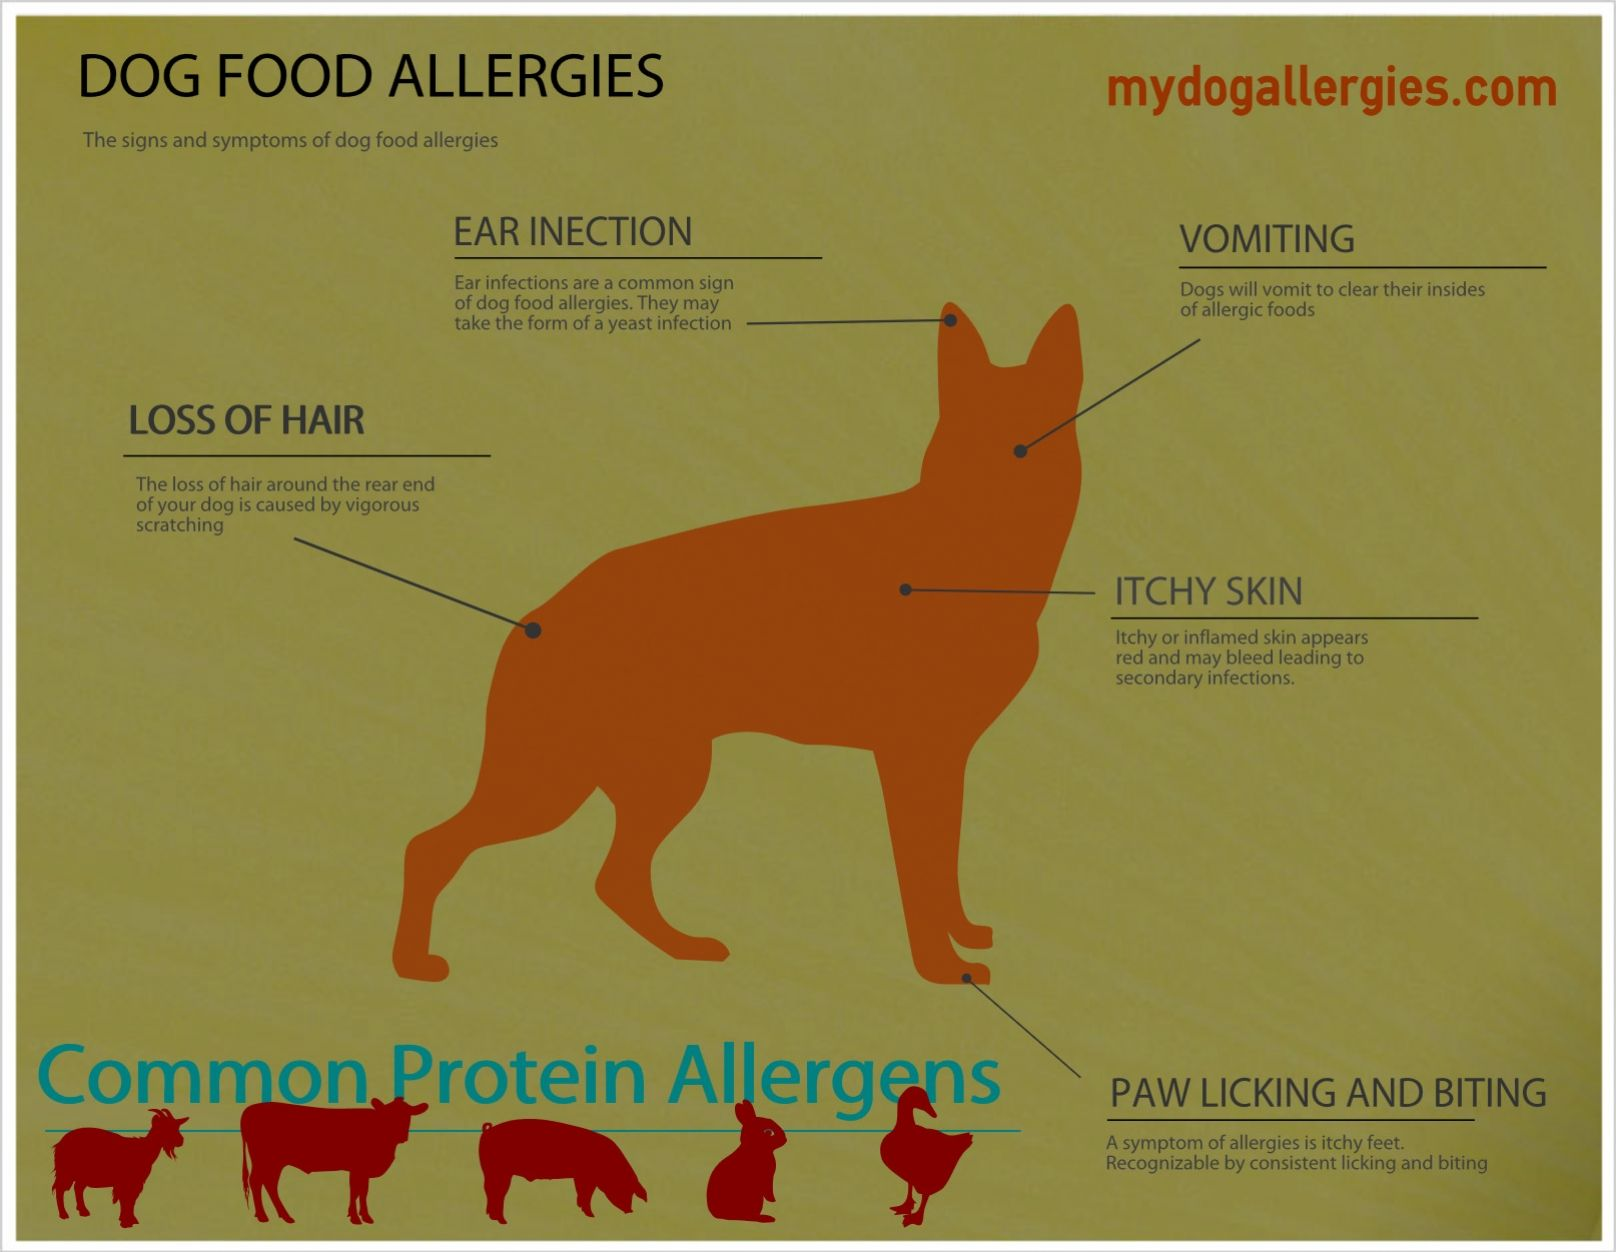 Dog Allergy symptoms | My Dog Allergies | Pinterest | Dog allergy ... | Dog Food Allergies Ear Infections